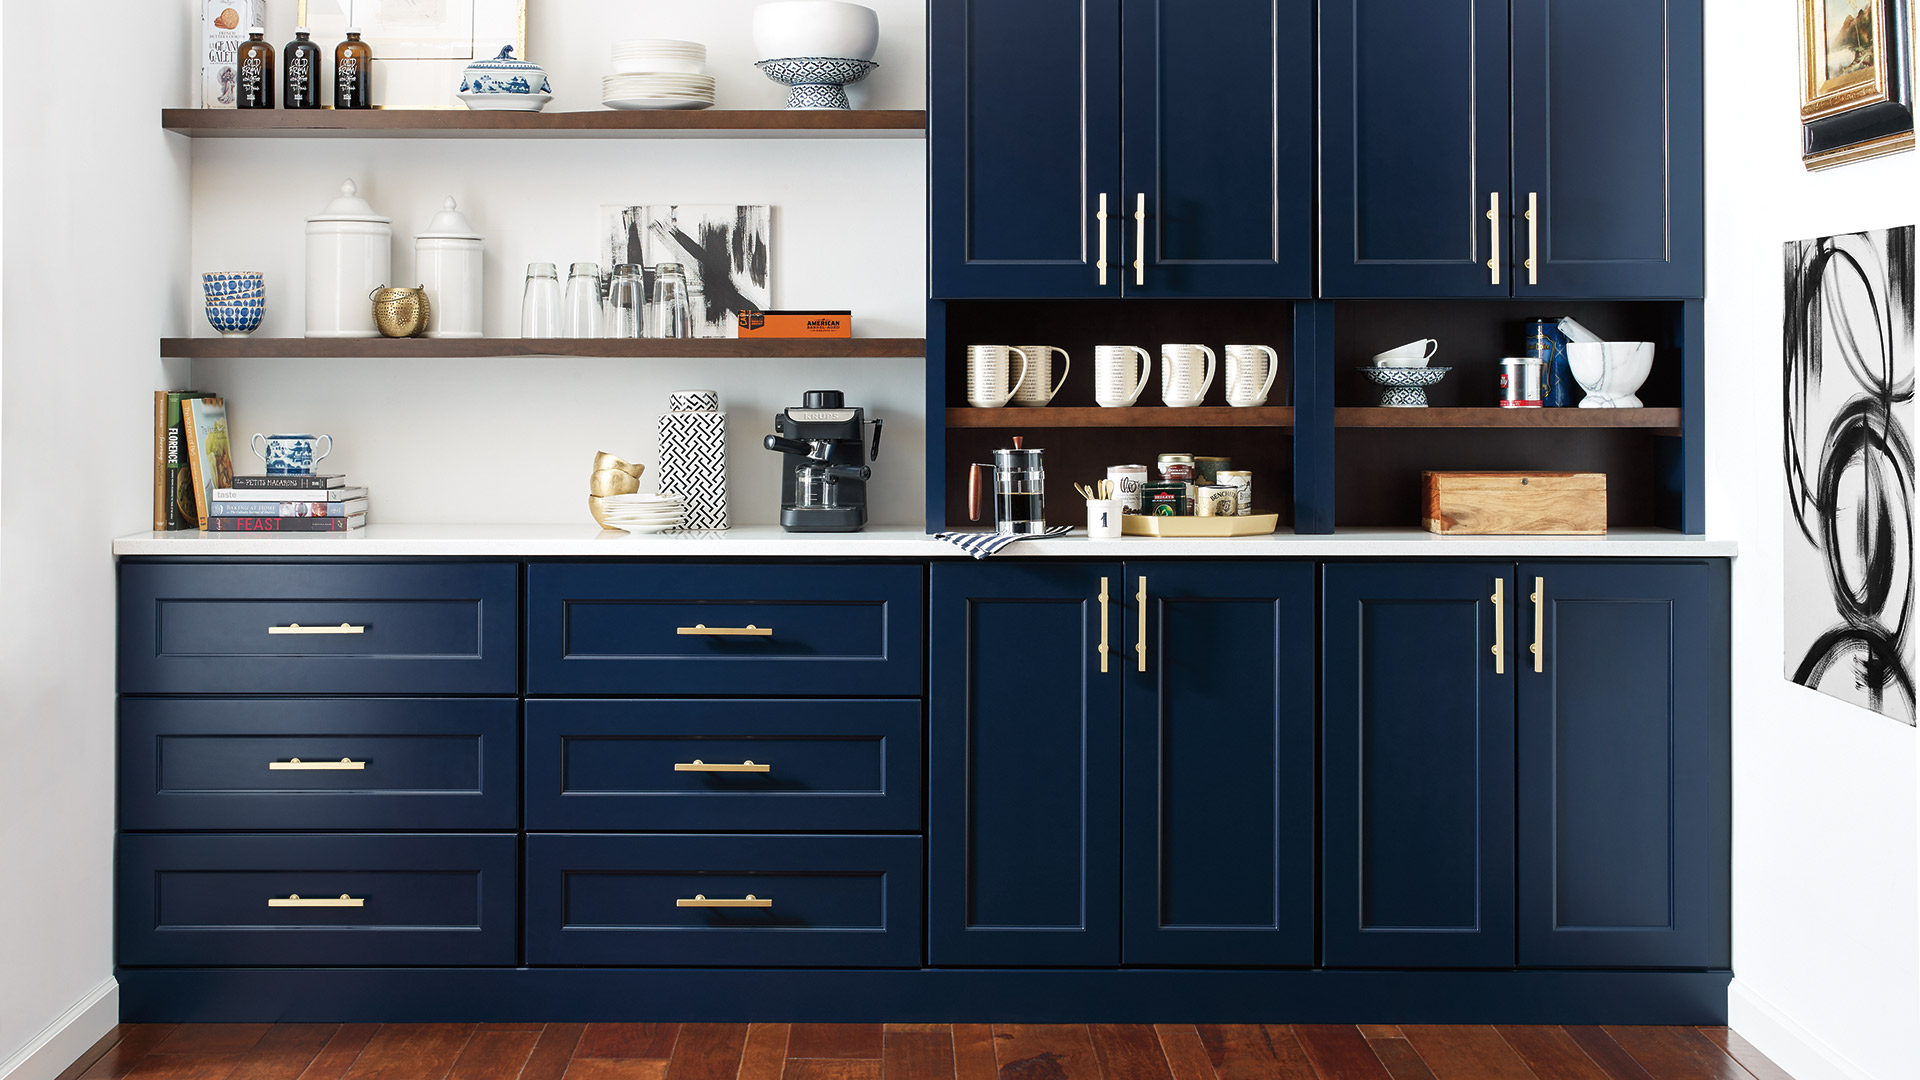 spruce kitchen accents ideas best stainless cabinets the blue cabinet beautiful steel